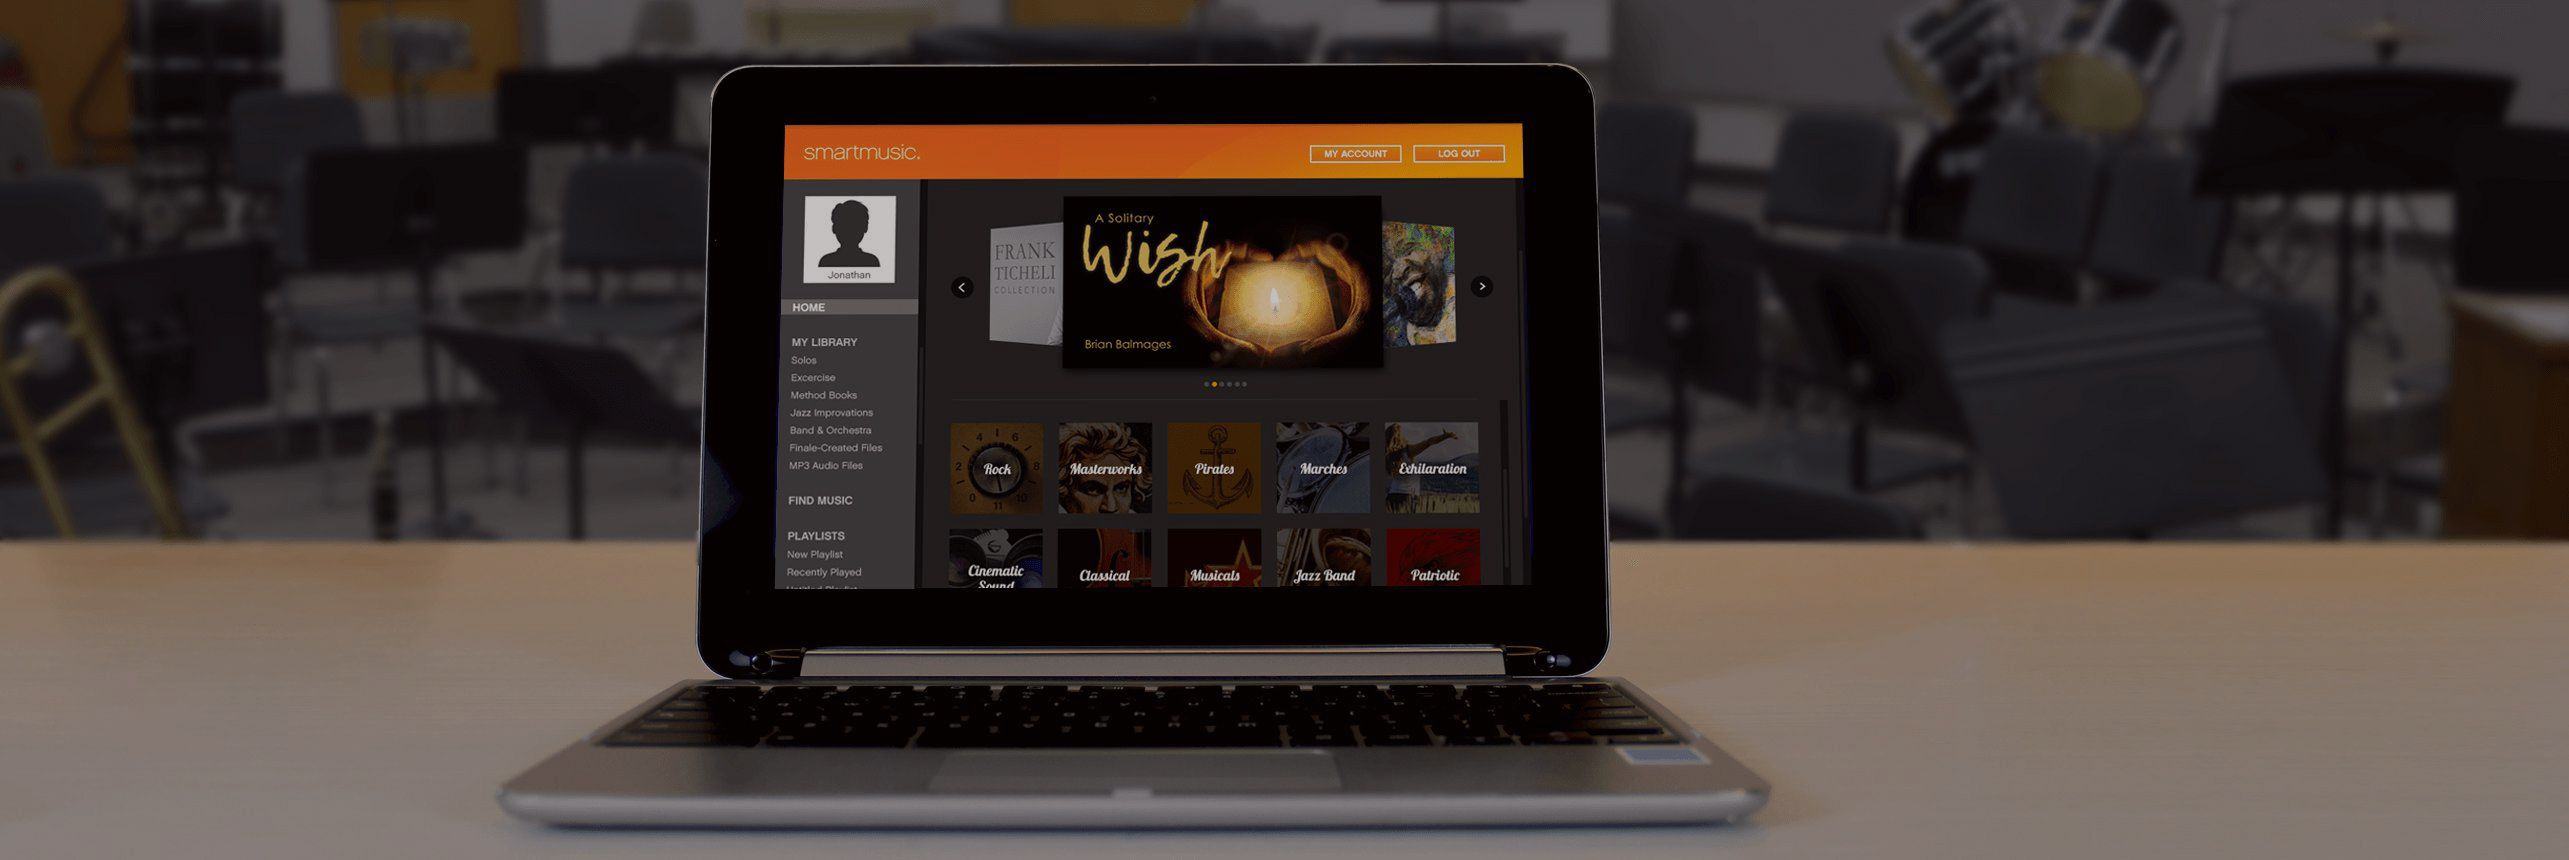 Classic smartmusic | download music education software.